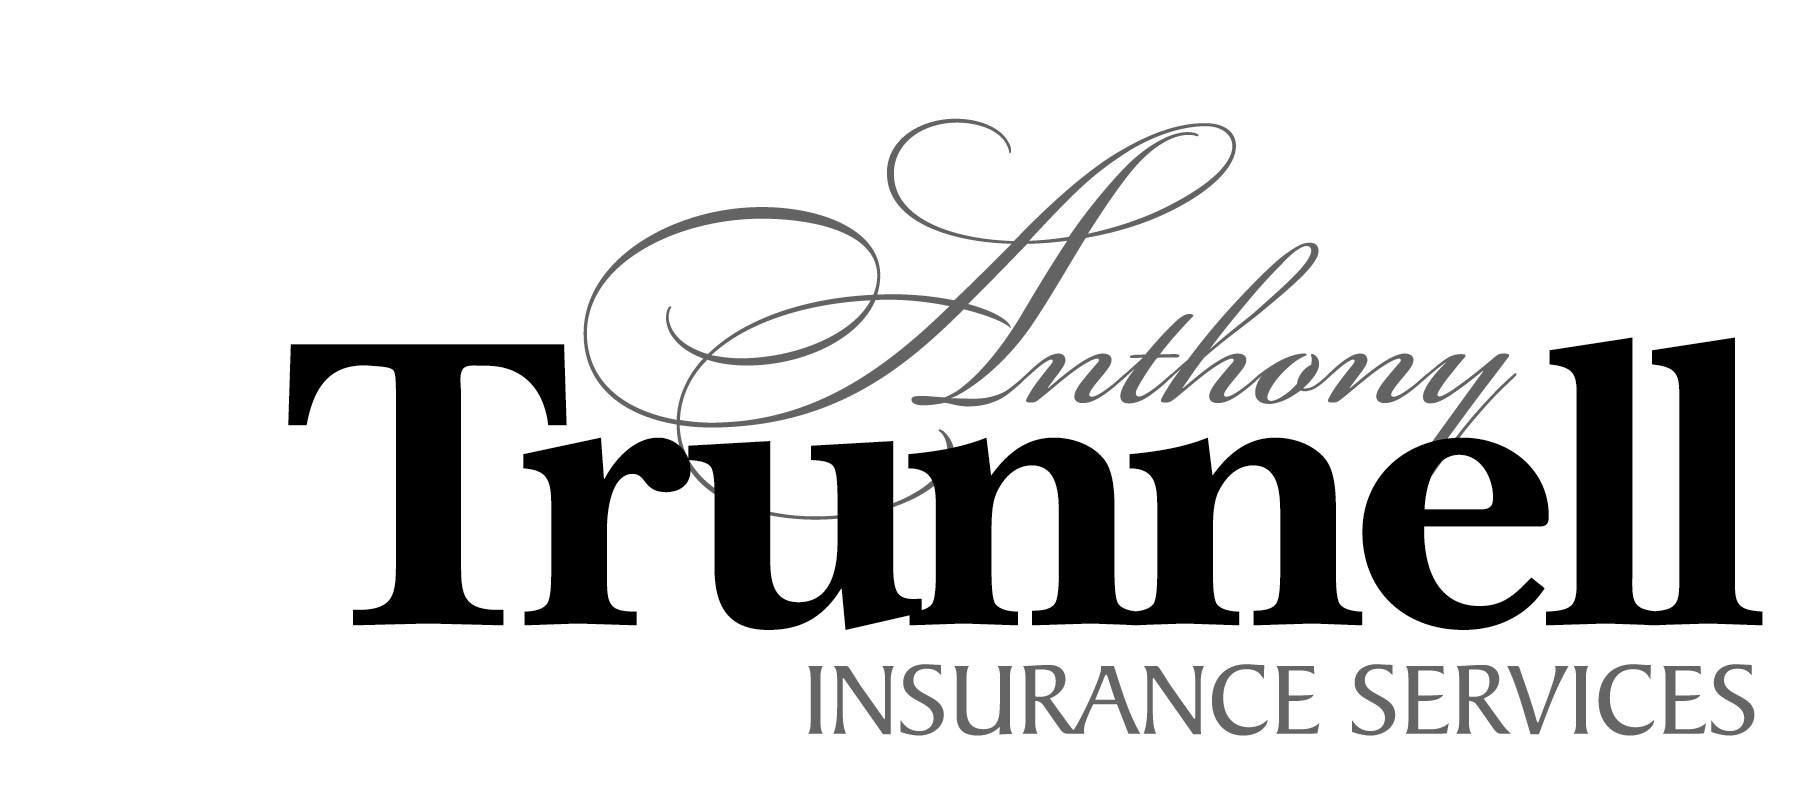 Trunnell Insurance Agency Auto, Life, Home, Renters and Business